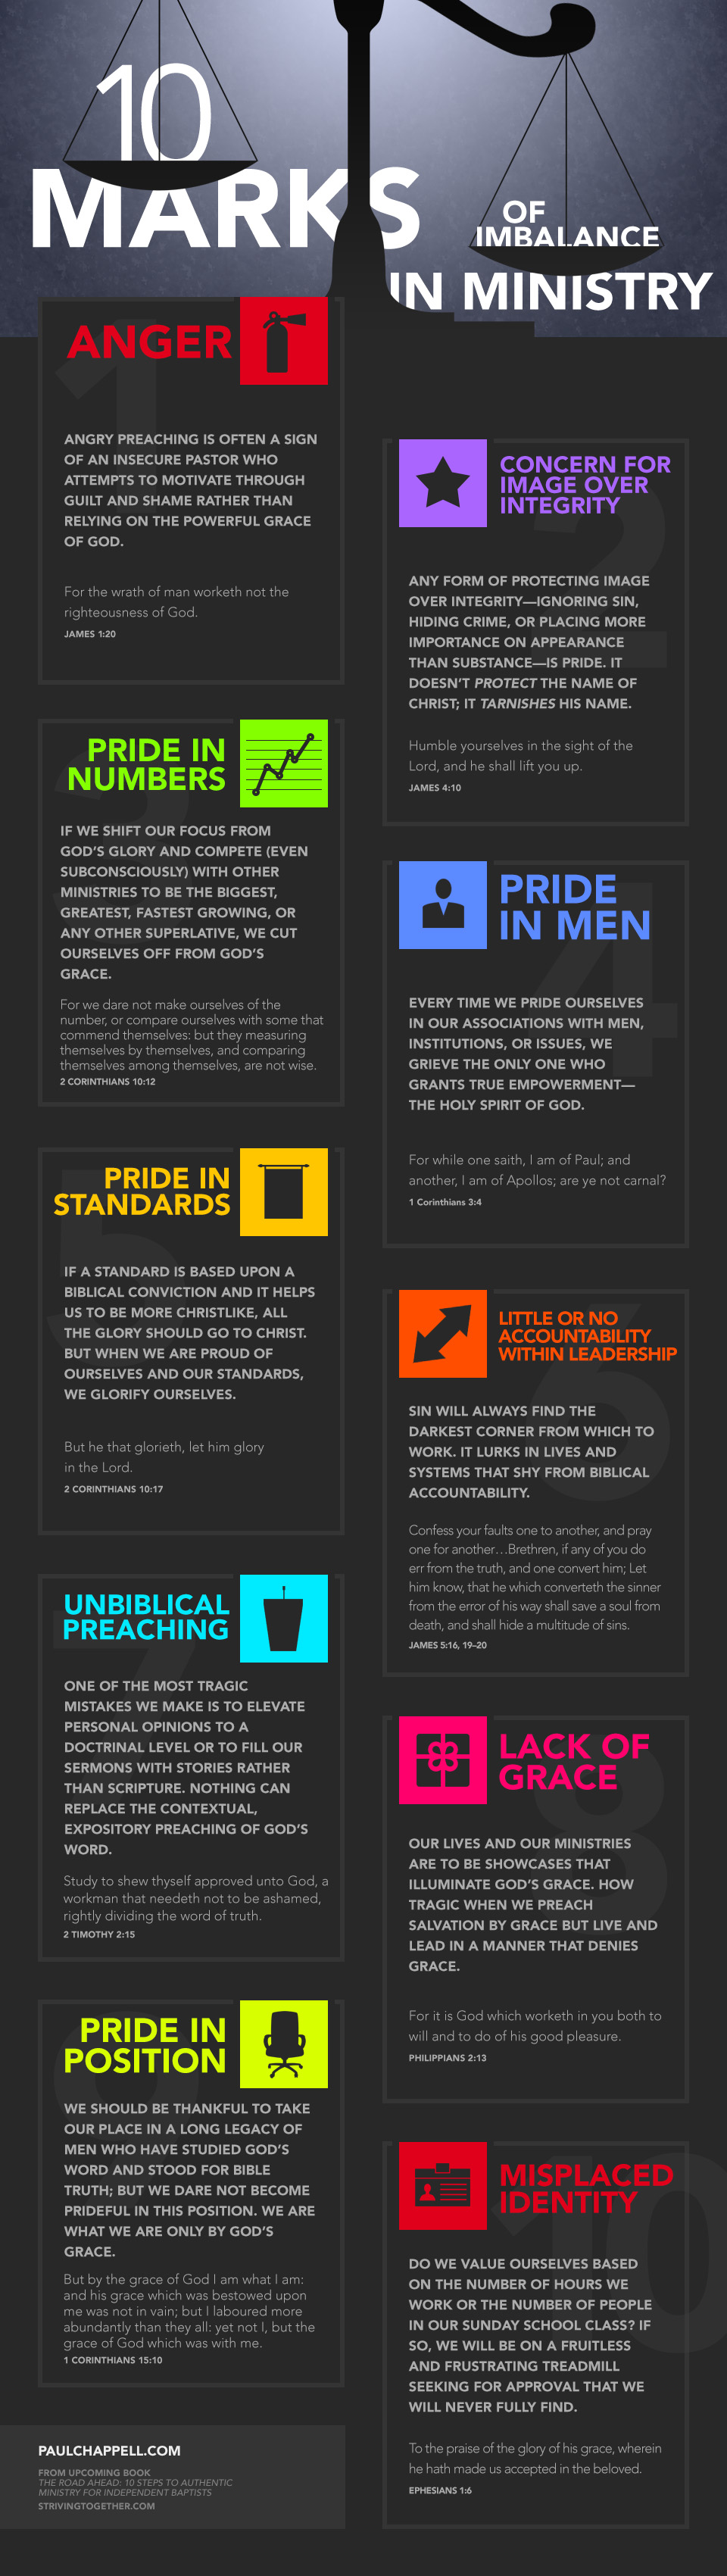 ten marks of imbalance in ministry an infographic pastor paul any of these ten imbalances and especially the pride that drives them can creep up on us such stealth as to make the imbalance imperceptible in the